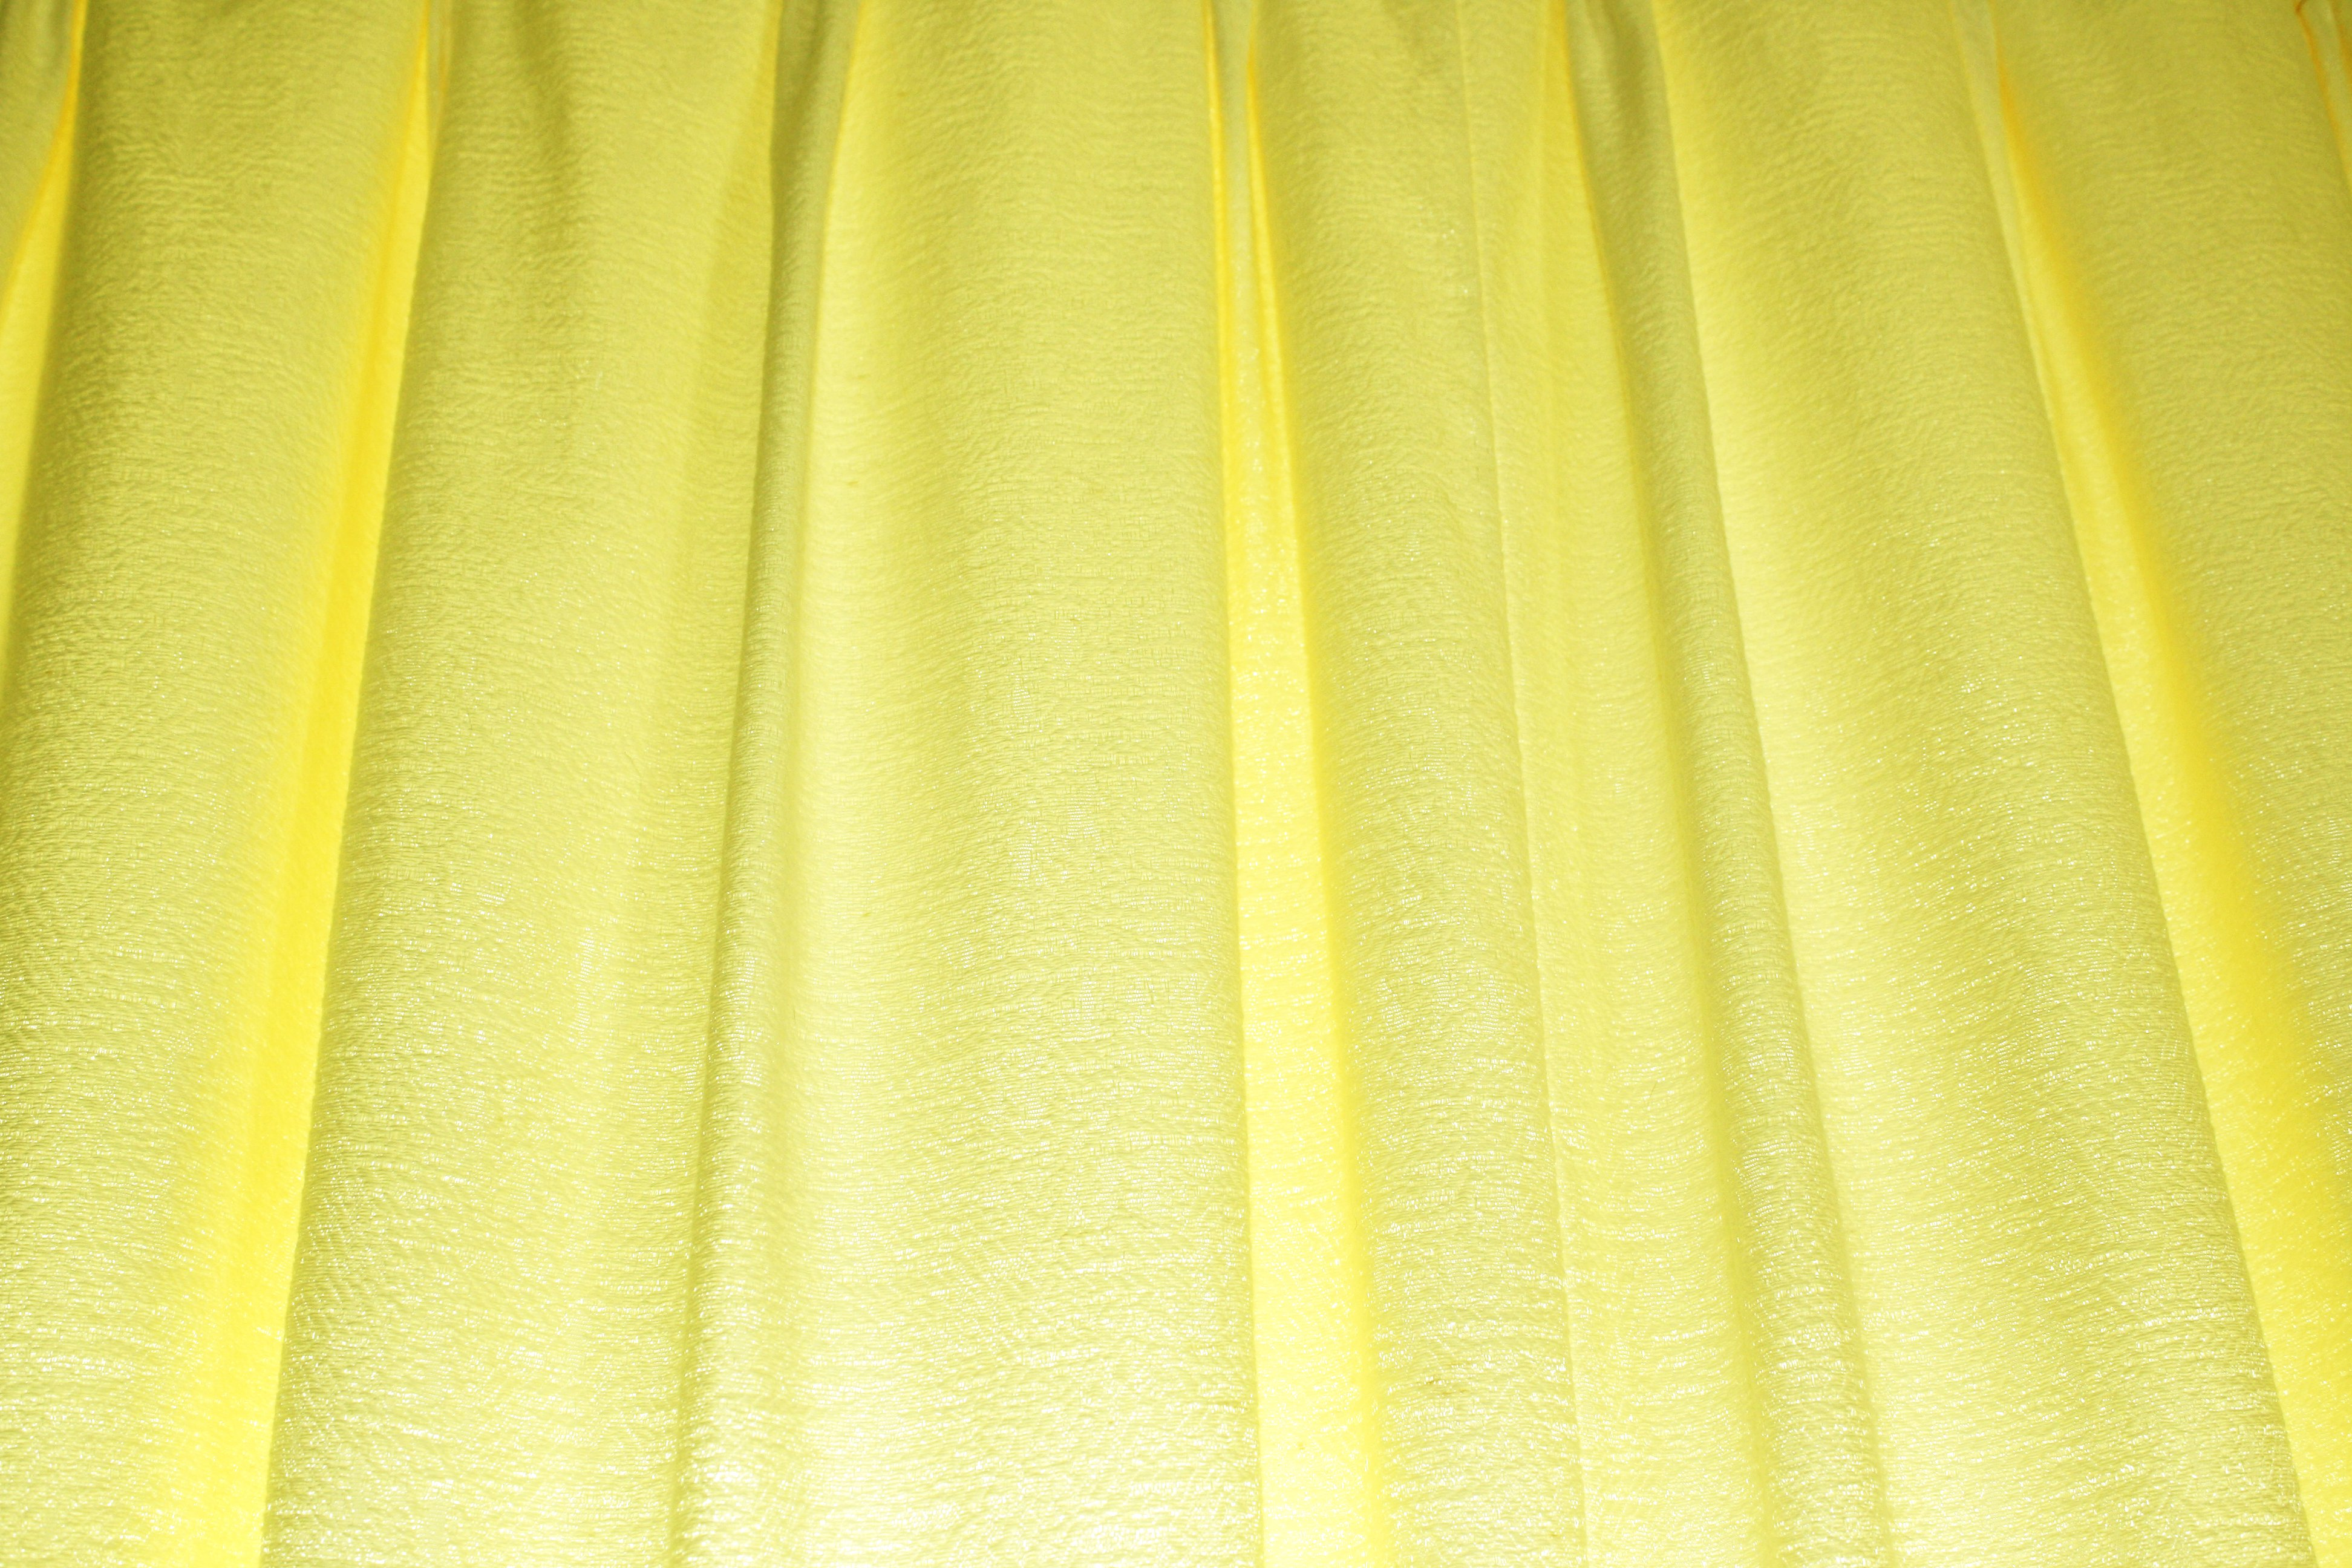 Click Here To Download Full Resolution Image Yellow Curtains Texture Free High